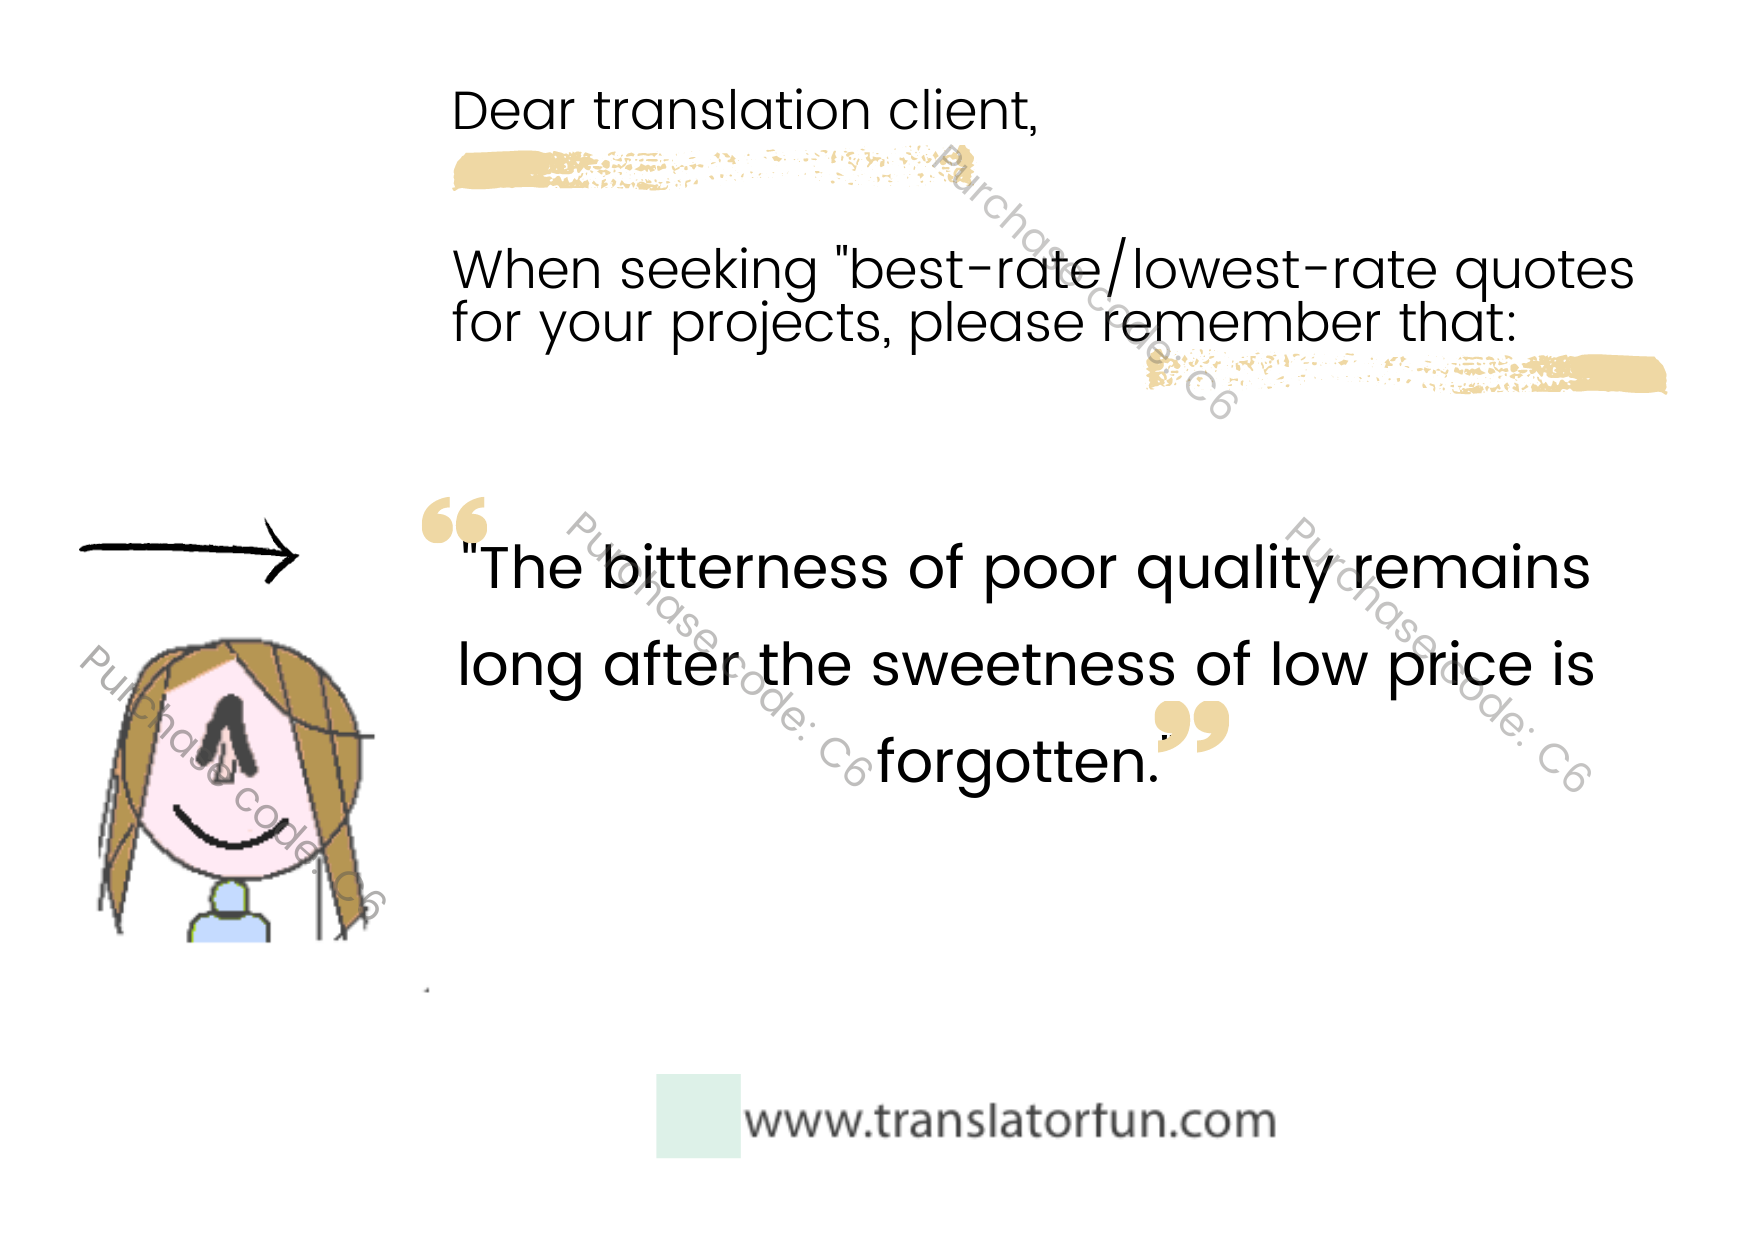 lowest rate quotes can be painful